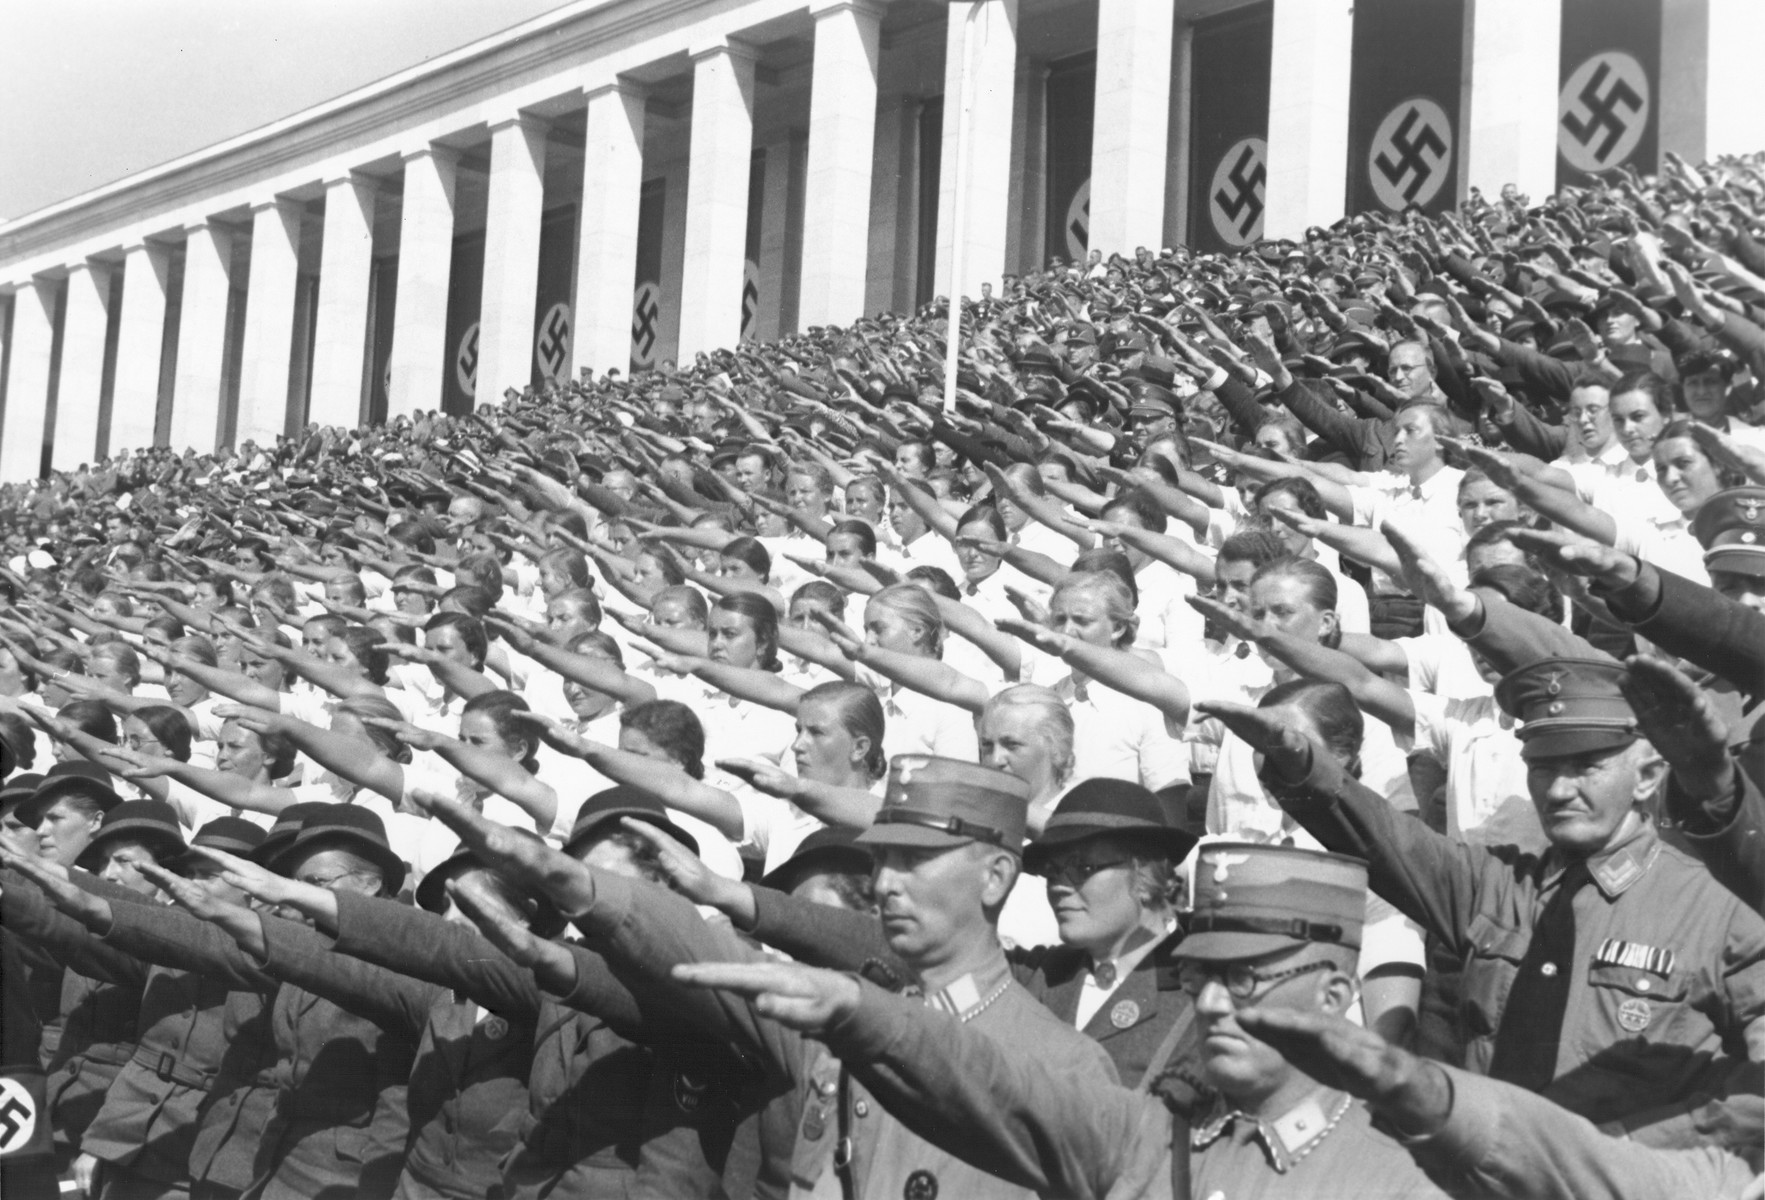 German spectators at the 1937 Reichsparteitag (Reich Party Day) celebrations in Nuremberg raise their arms in the Nazi salute.